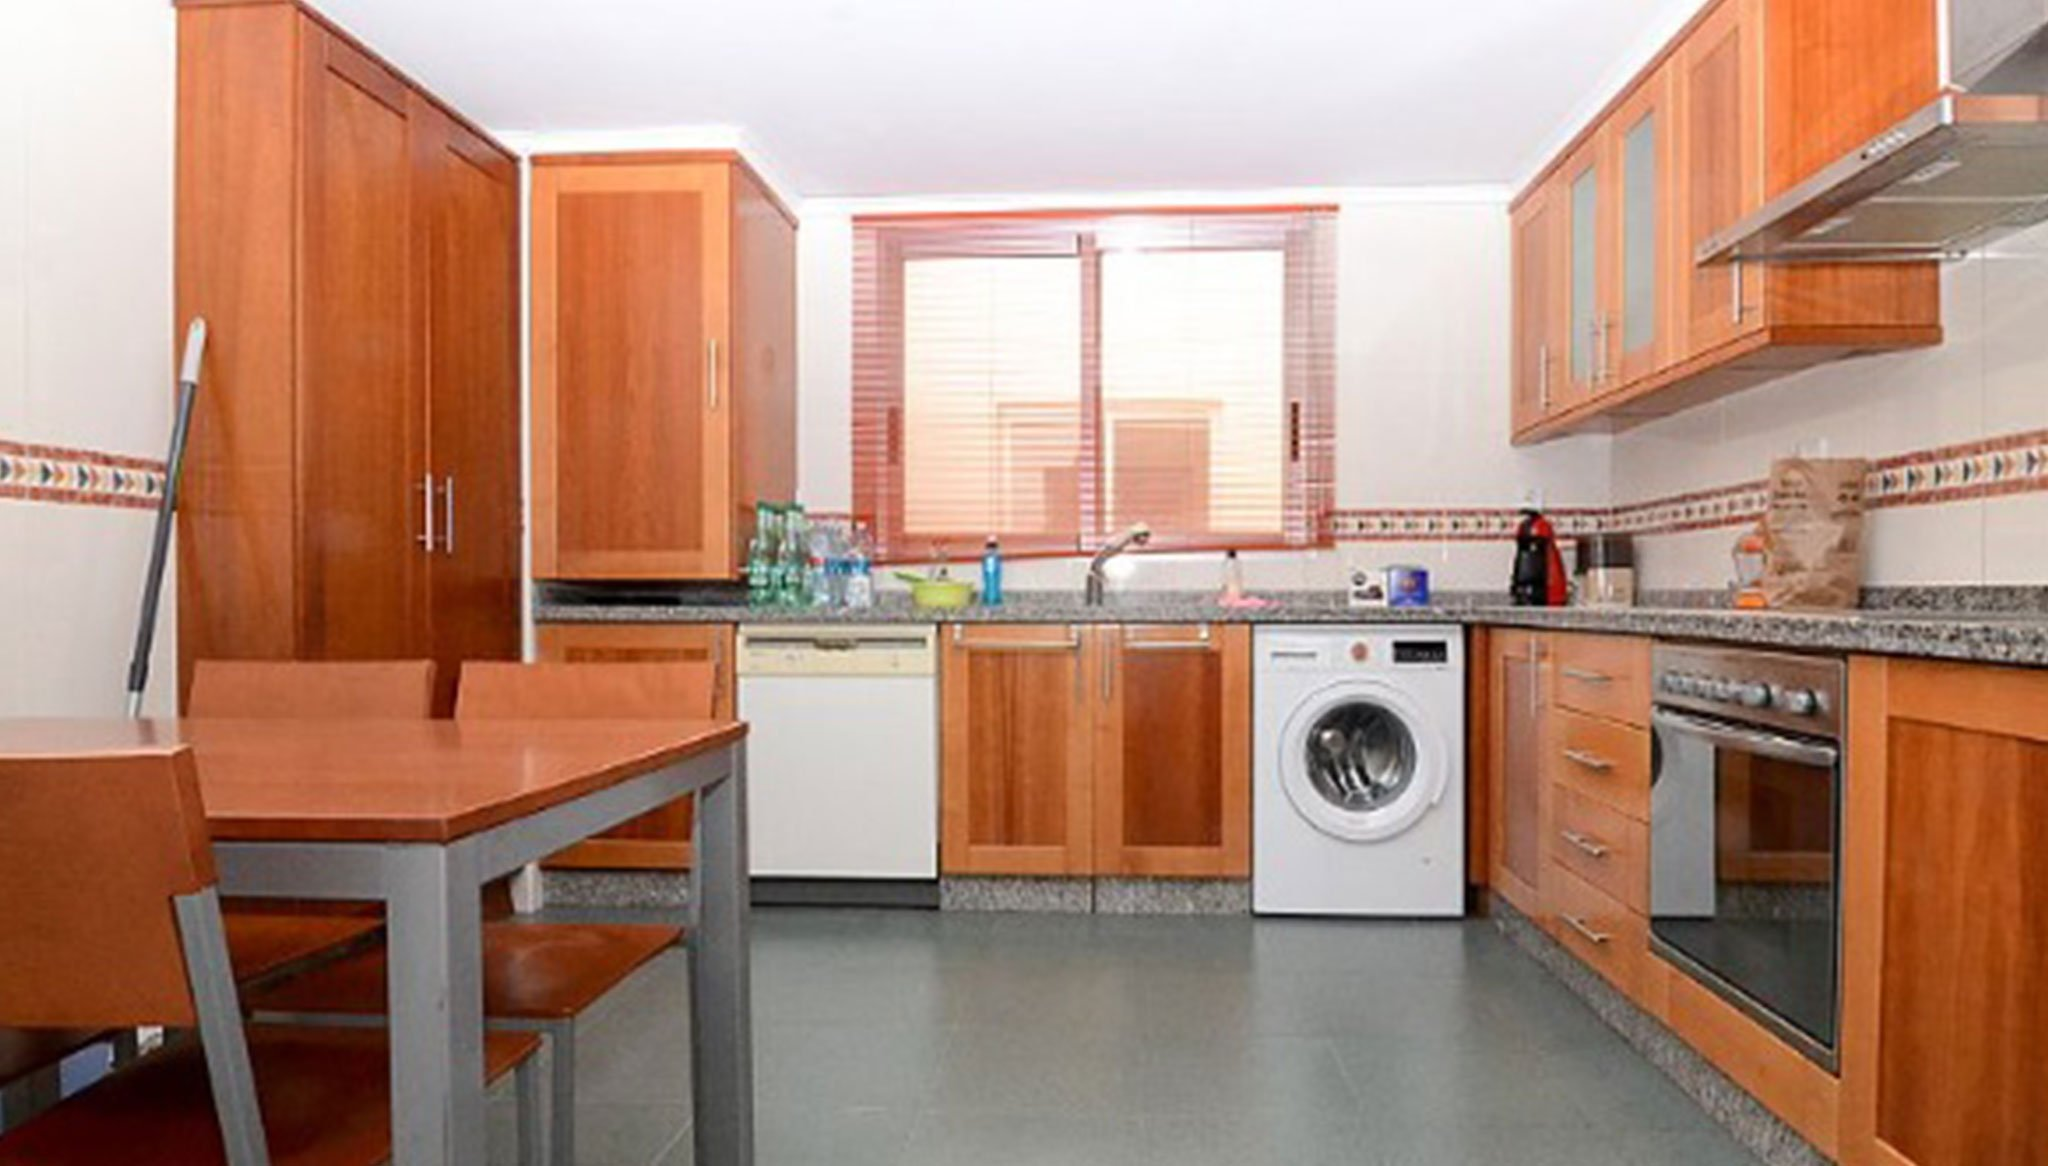 Kitchen of a penthouse for sale in Dénia - Euroholding